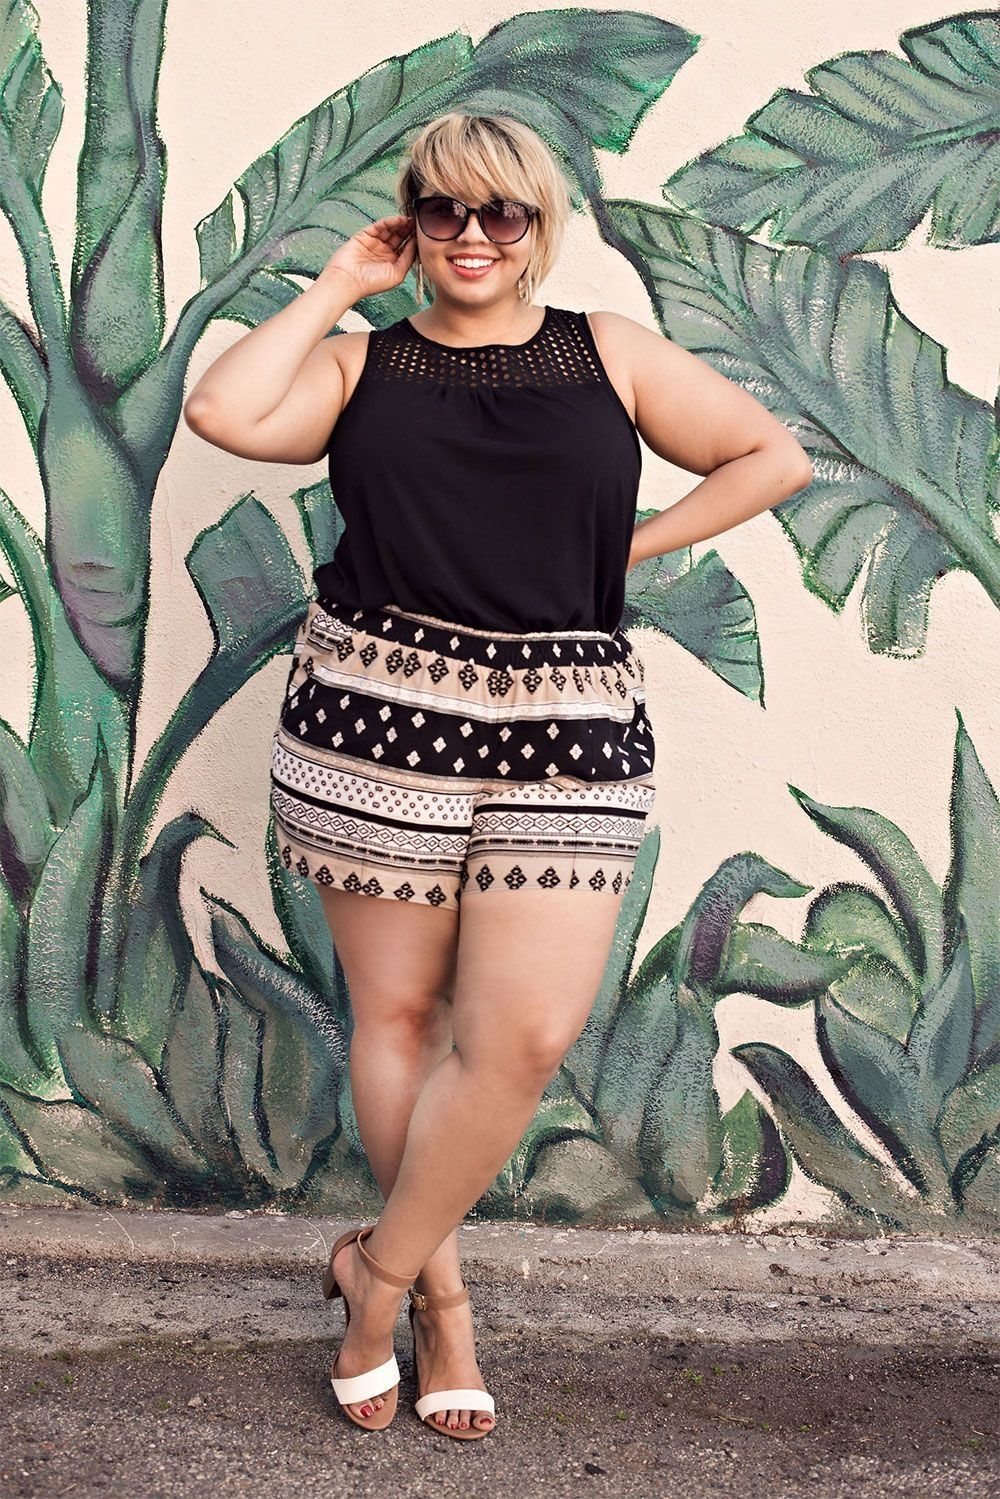 30 Adorable Style Plus Size Fashion For Women To Inspire You, The sculpted back designs can fluctuate depending on the occasion and place. Attempt to keep in mind that although something is in style at the pres...